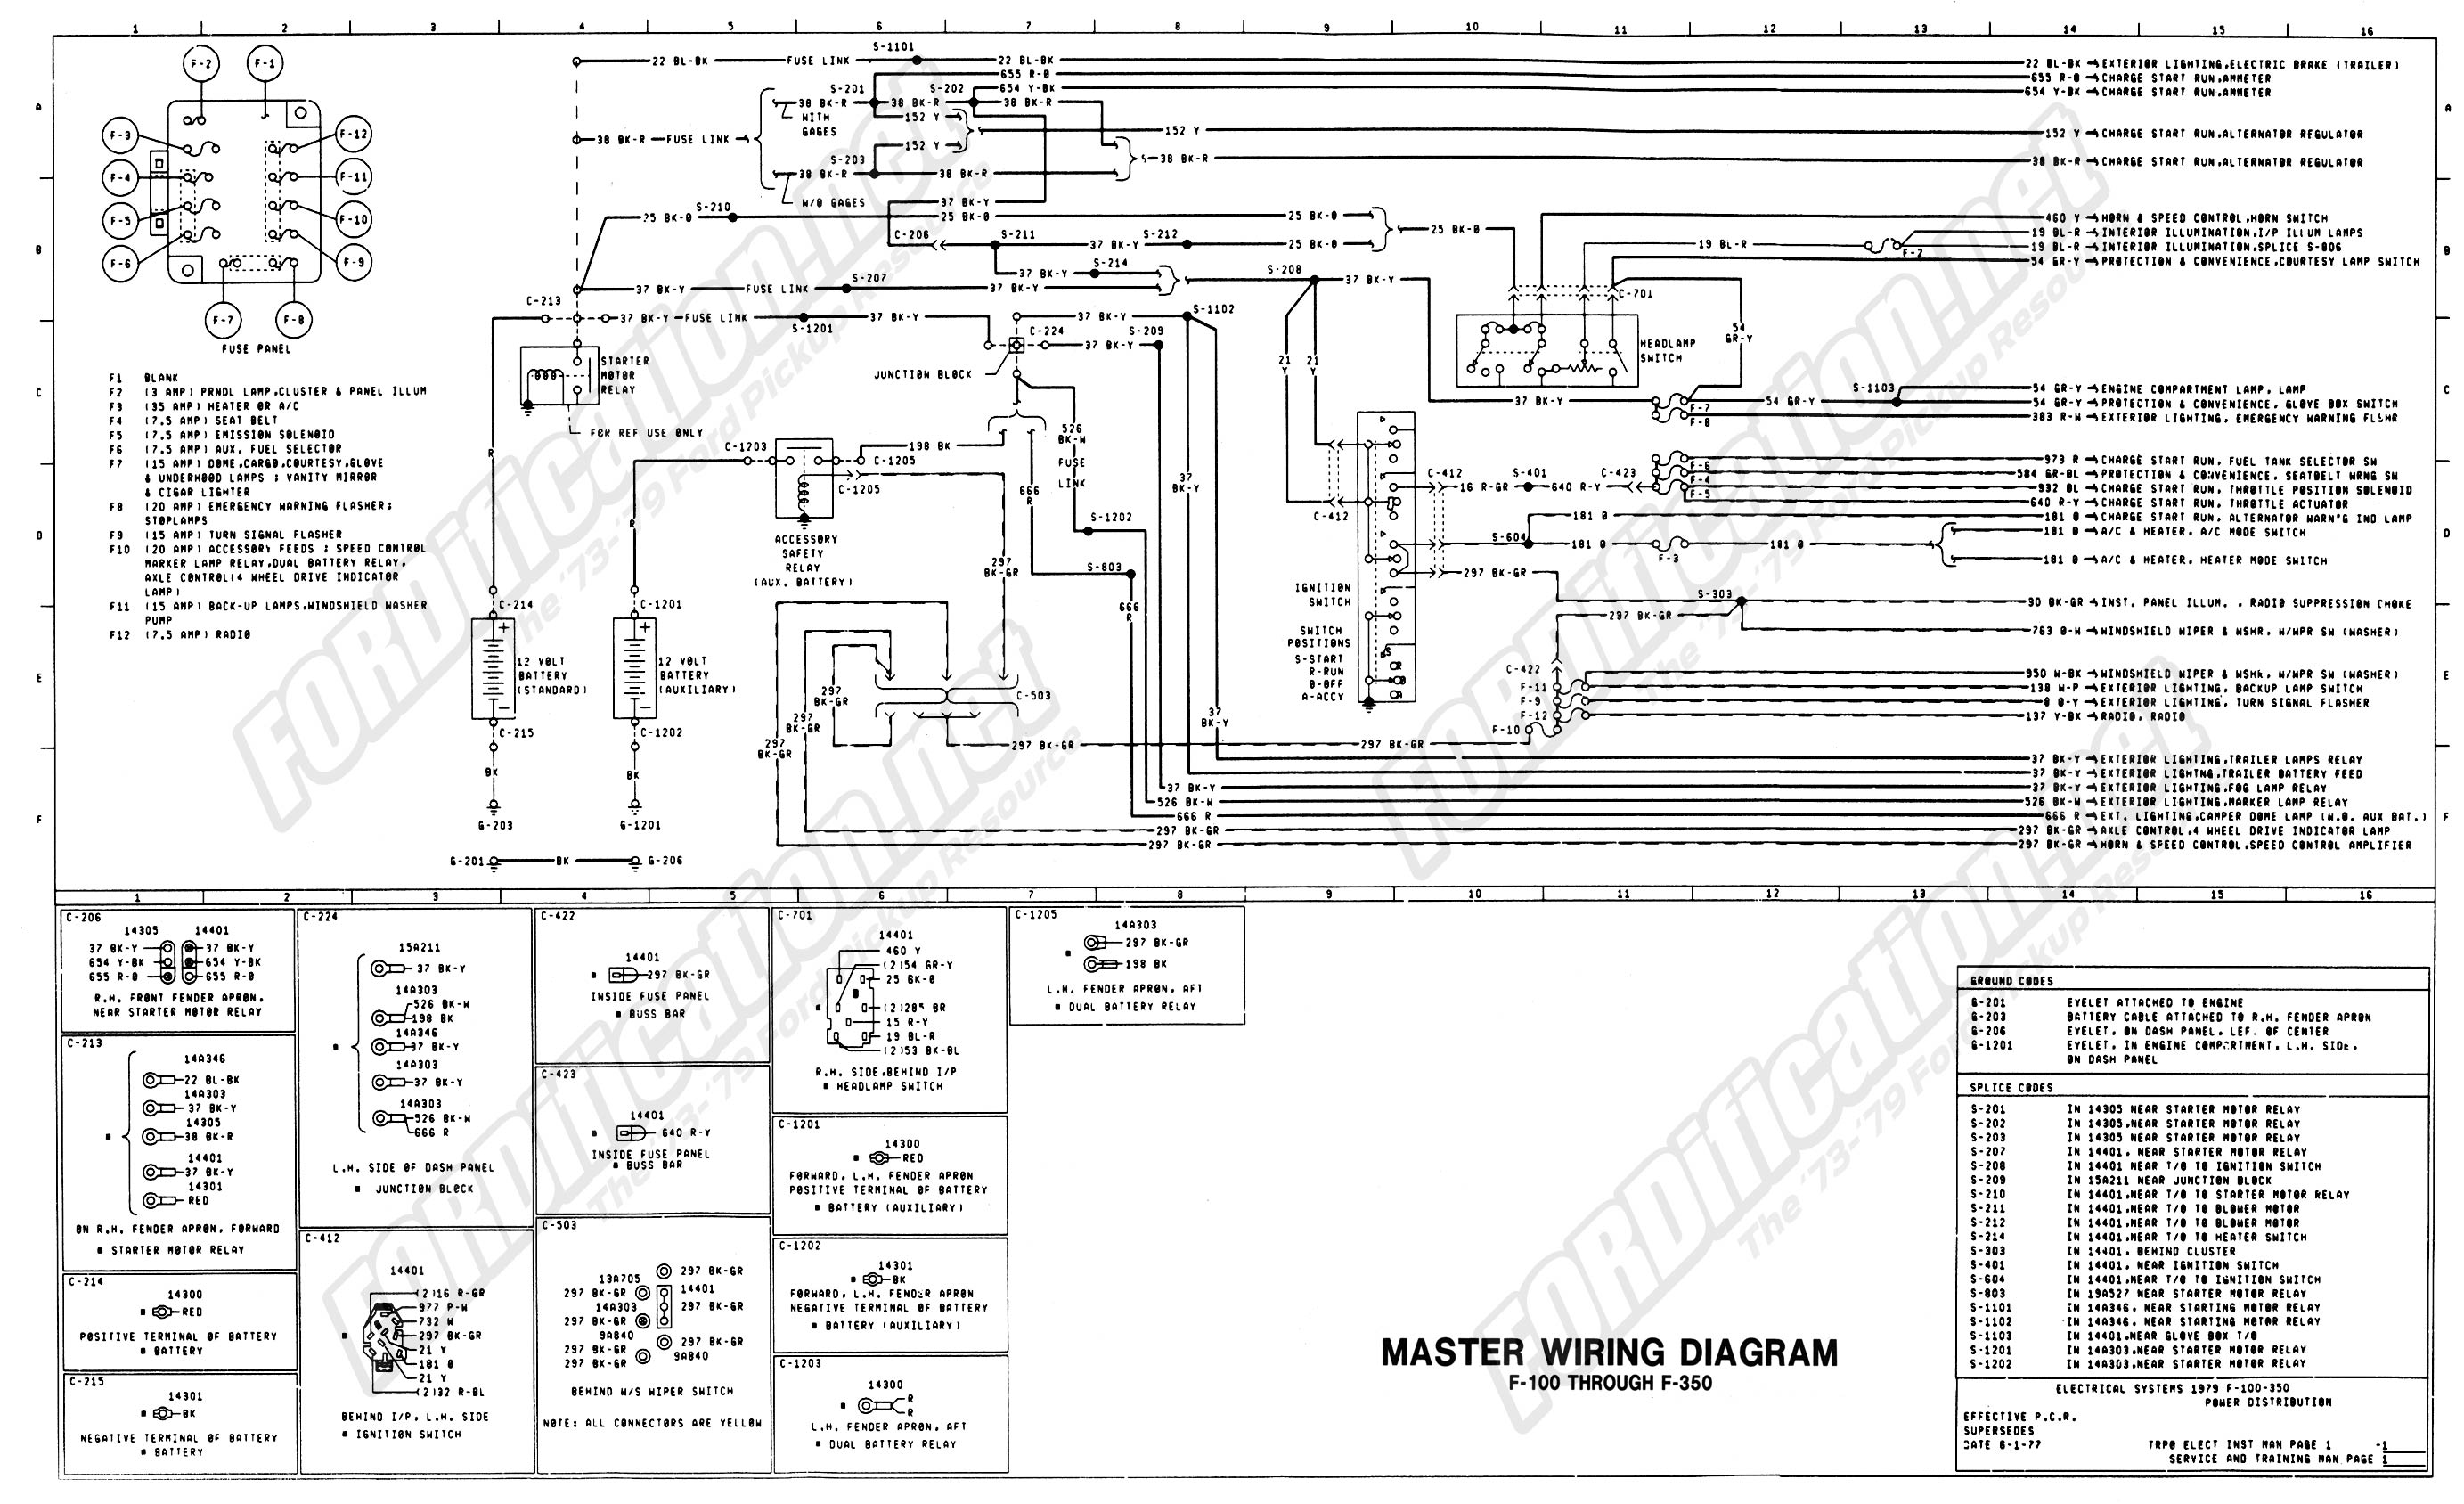 wiring_79master_1of9 1973 1979 ford truck wiring diagrams & schematics fordification net 1979 ford bronco wiring diagram at fashall.co